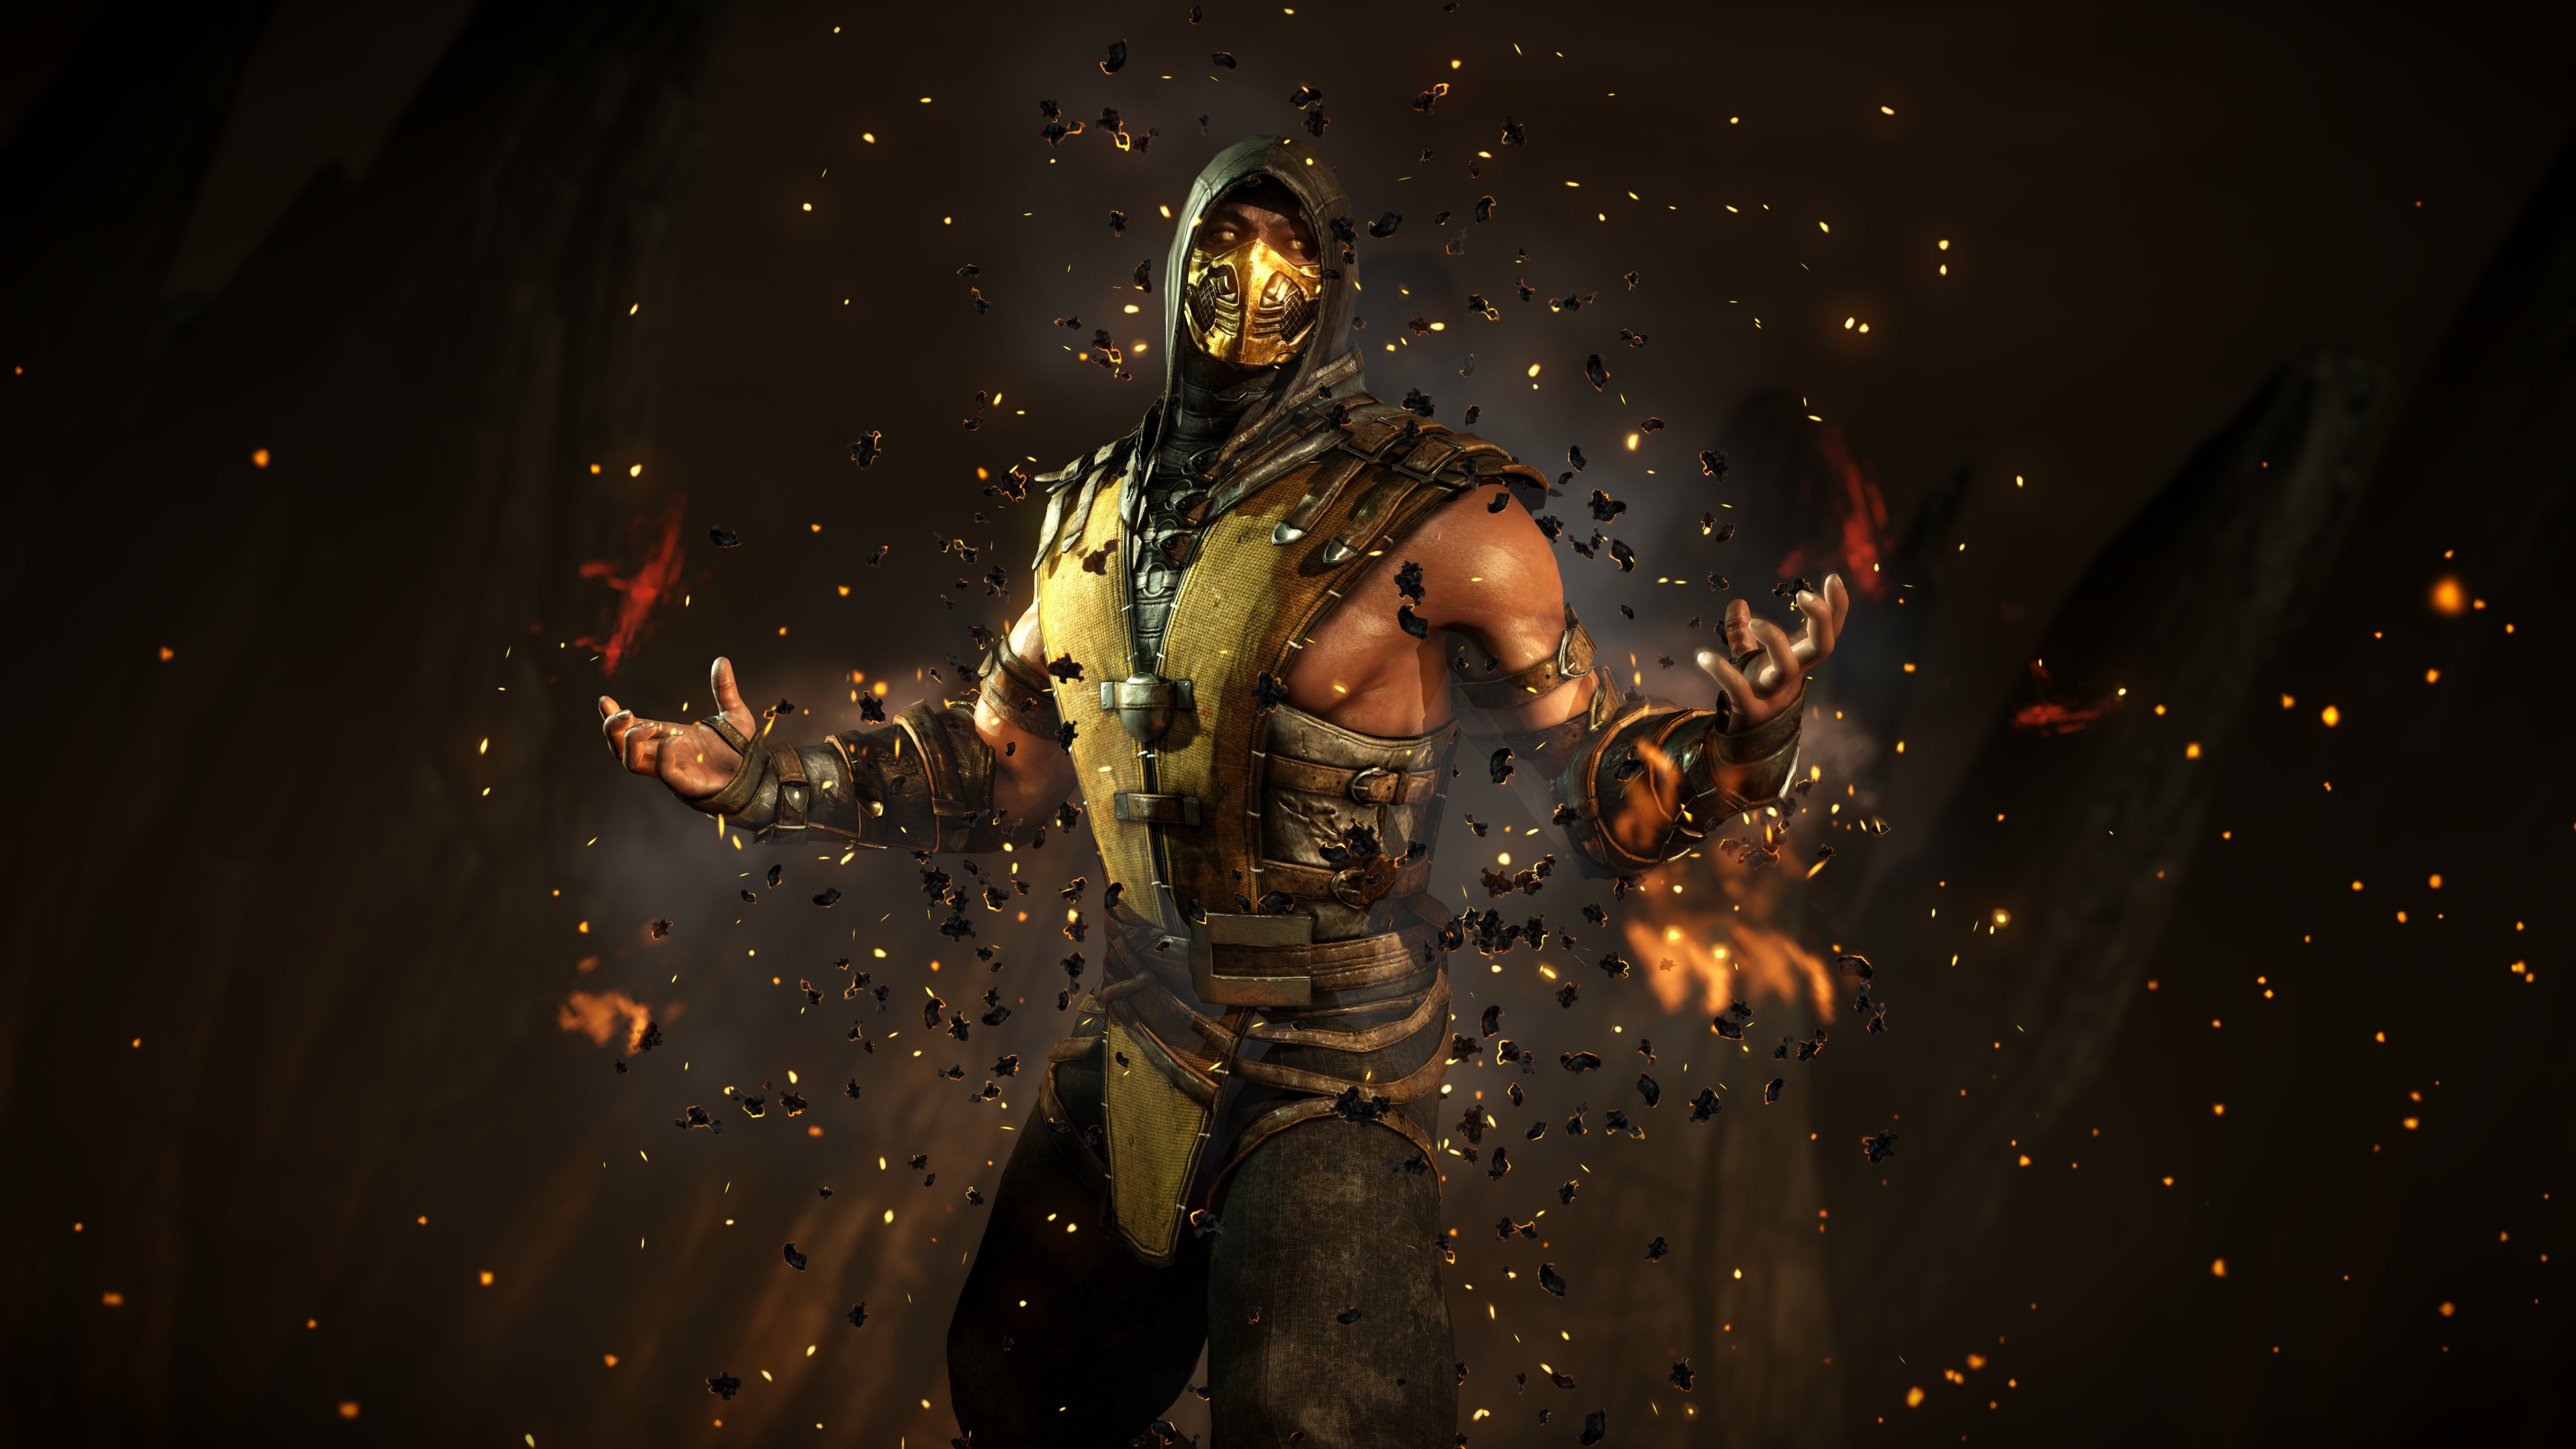 3840x2160 Mortal Kombat Scorpion Wallpaper